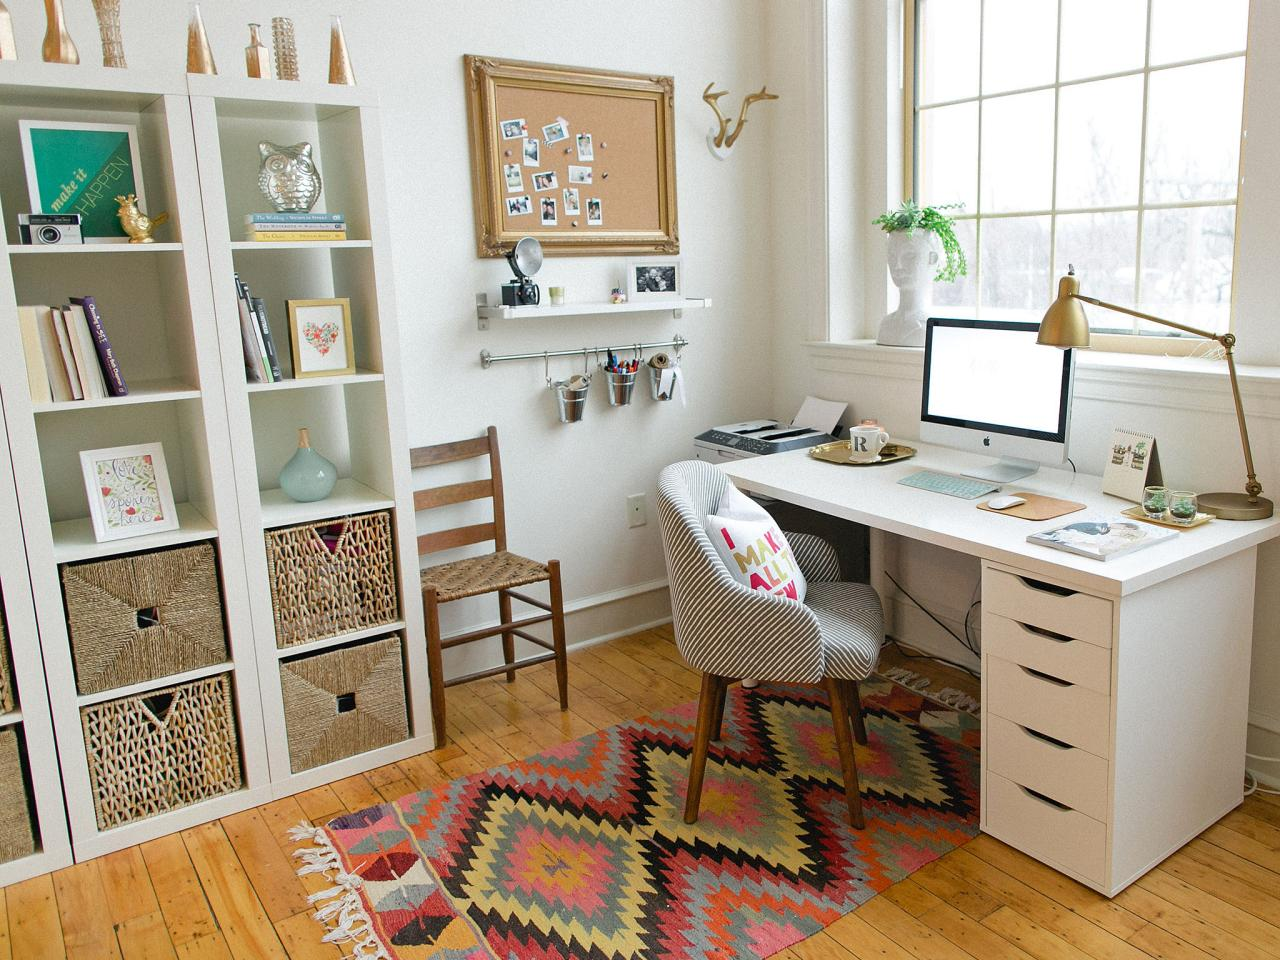 5 quick tips for home office organization hgtv - Home office design ideas on a budget ...